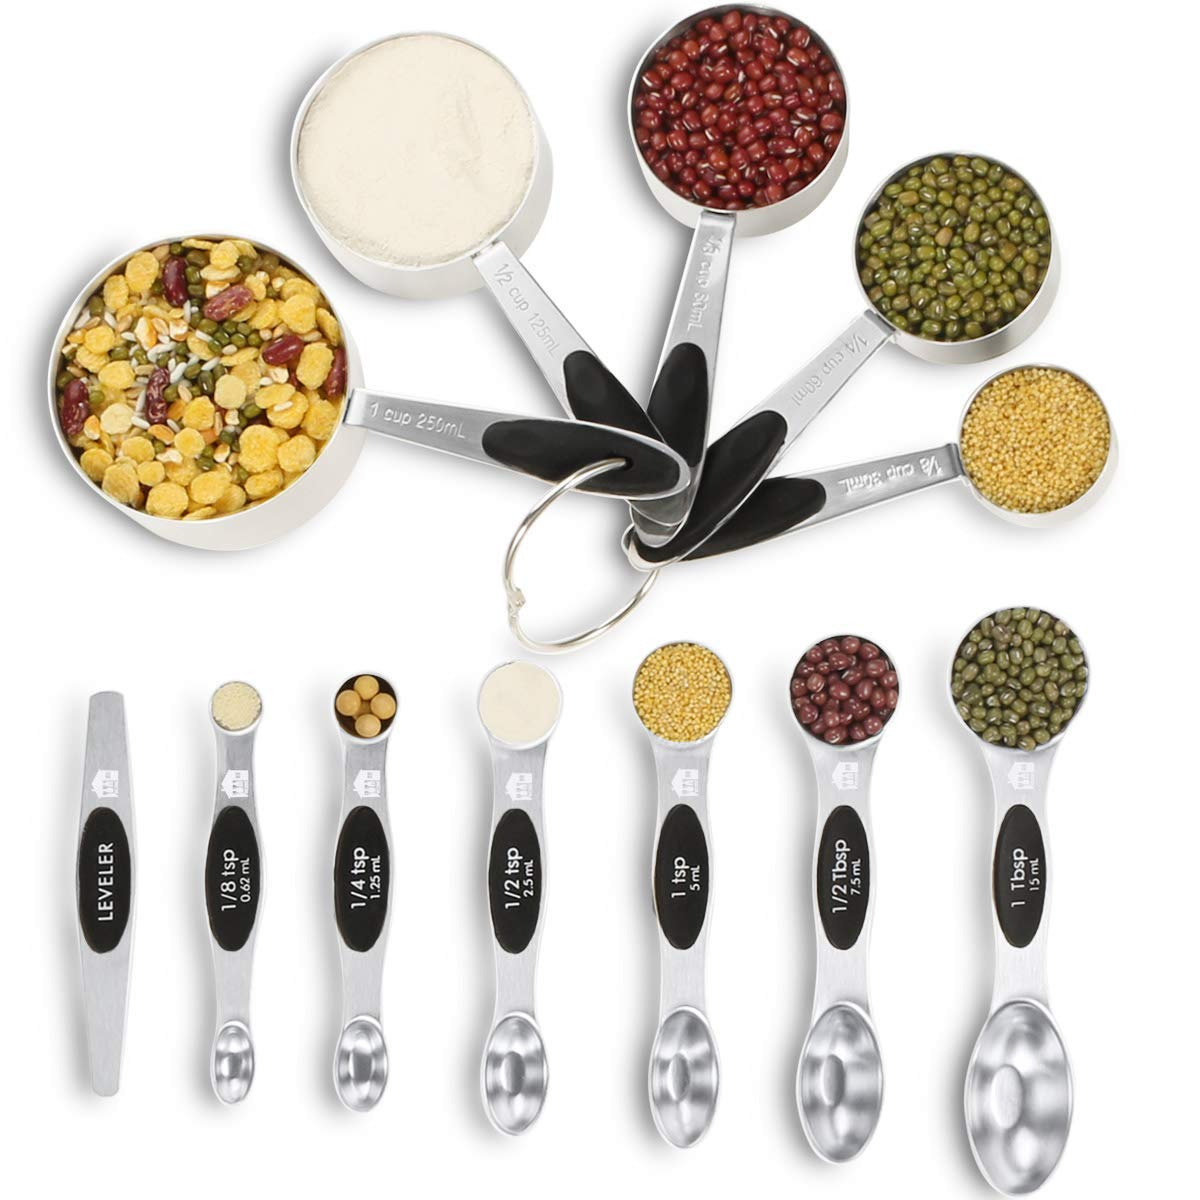 Buy Magnetic Stainless Steel Measuring Spoons Set Yinqag